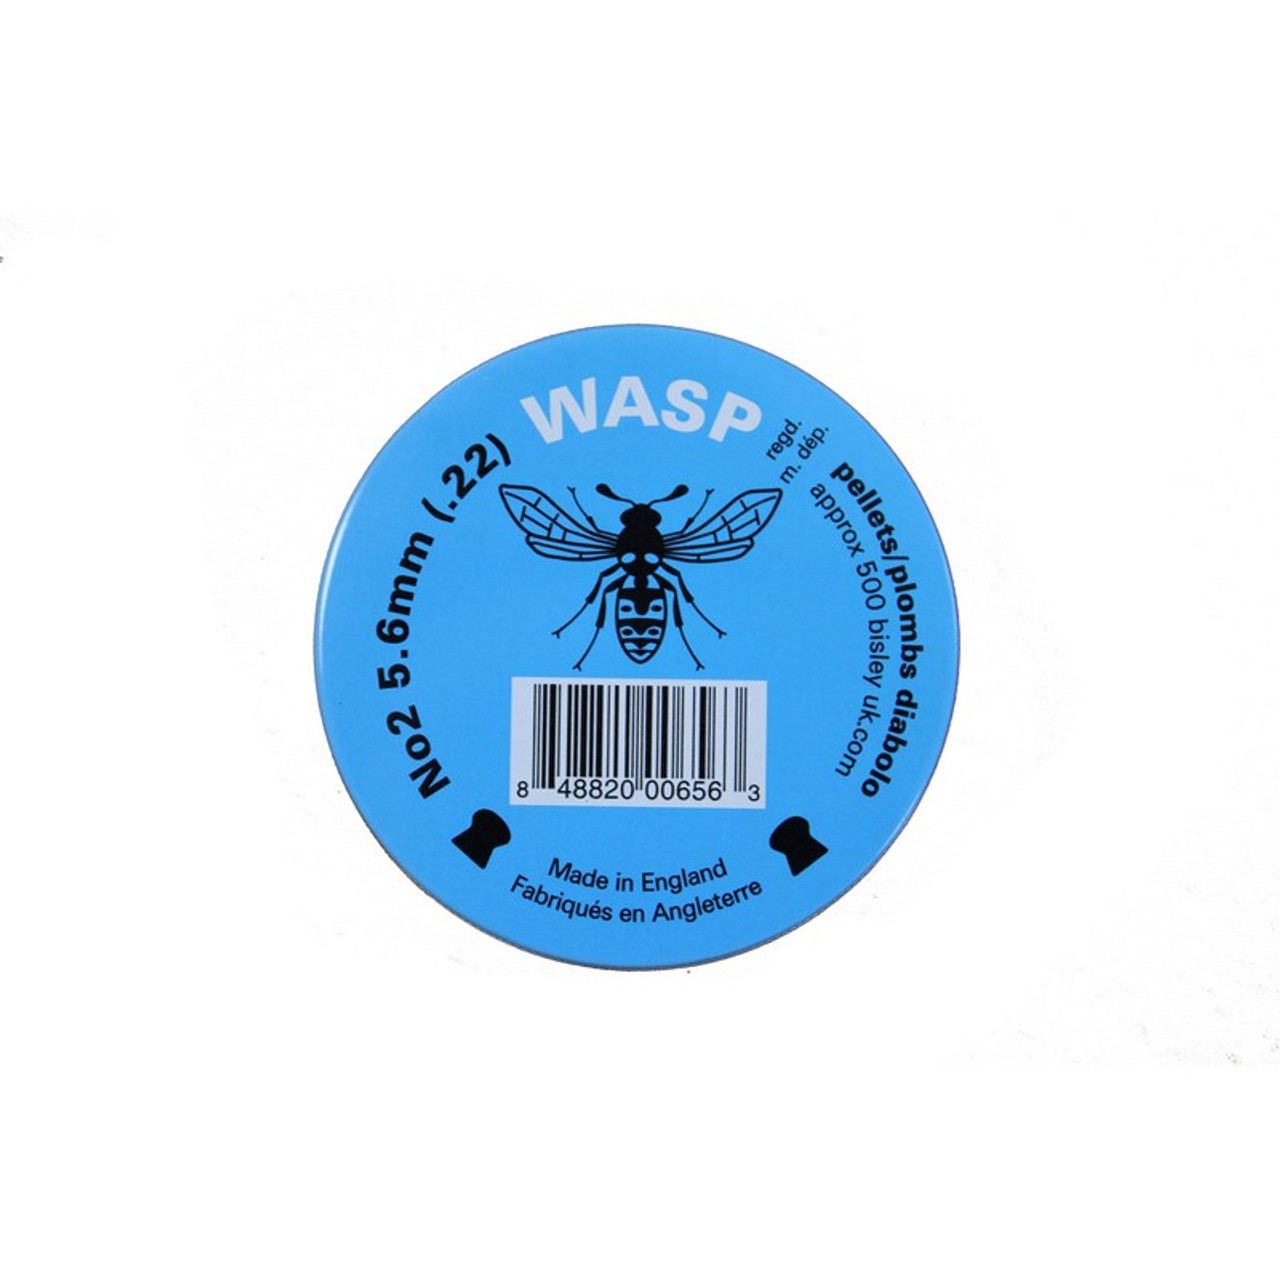 Best price for Wasp .22 Pellets Blue Tin